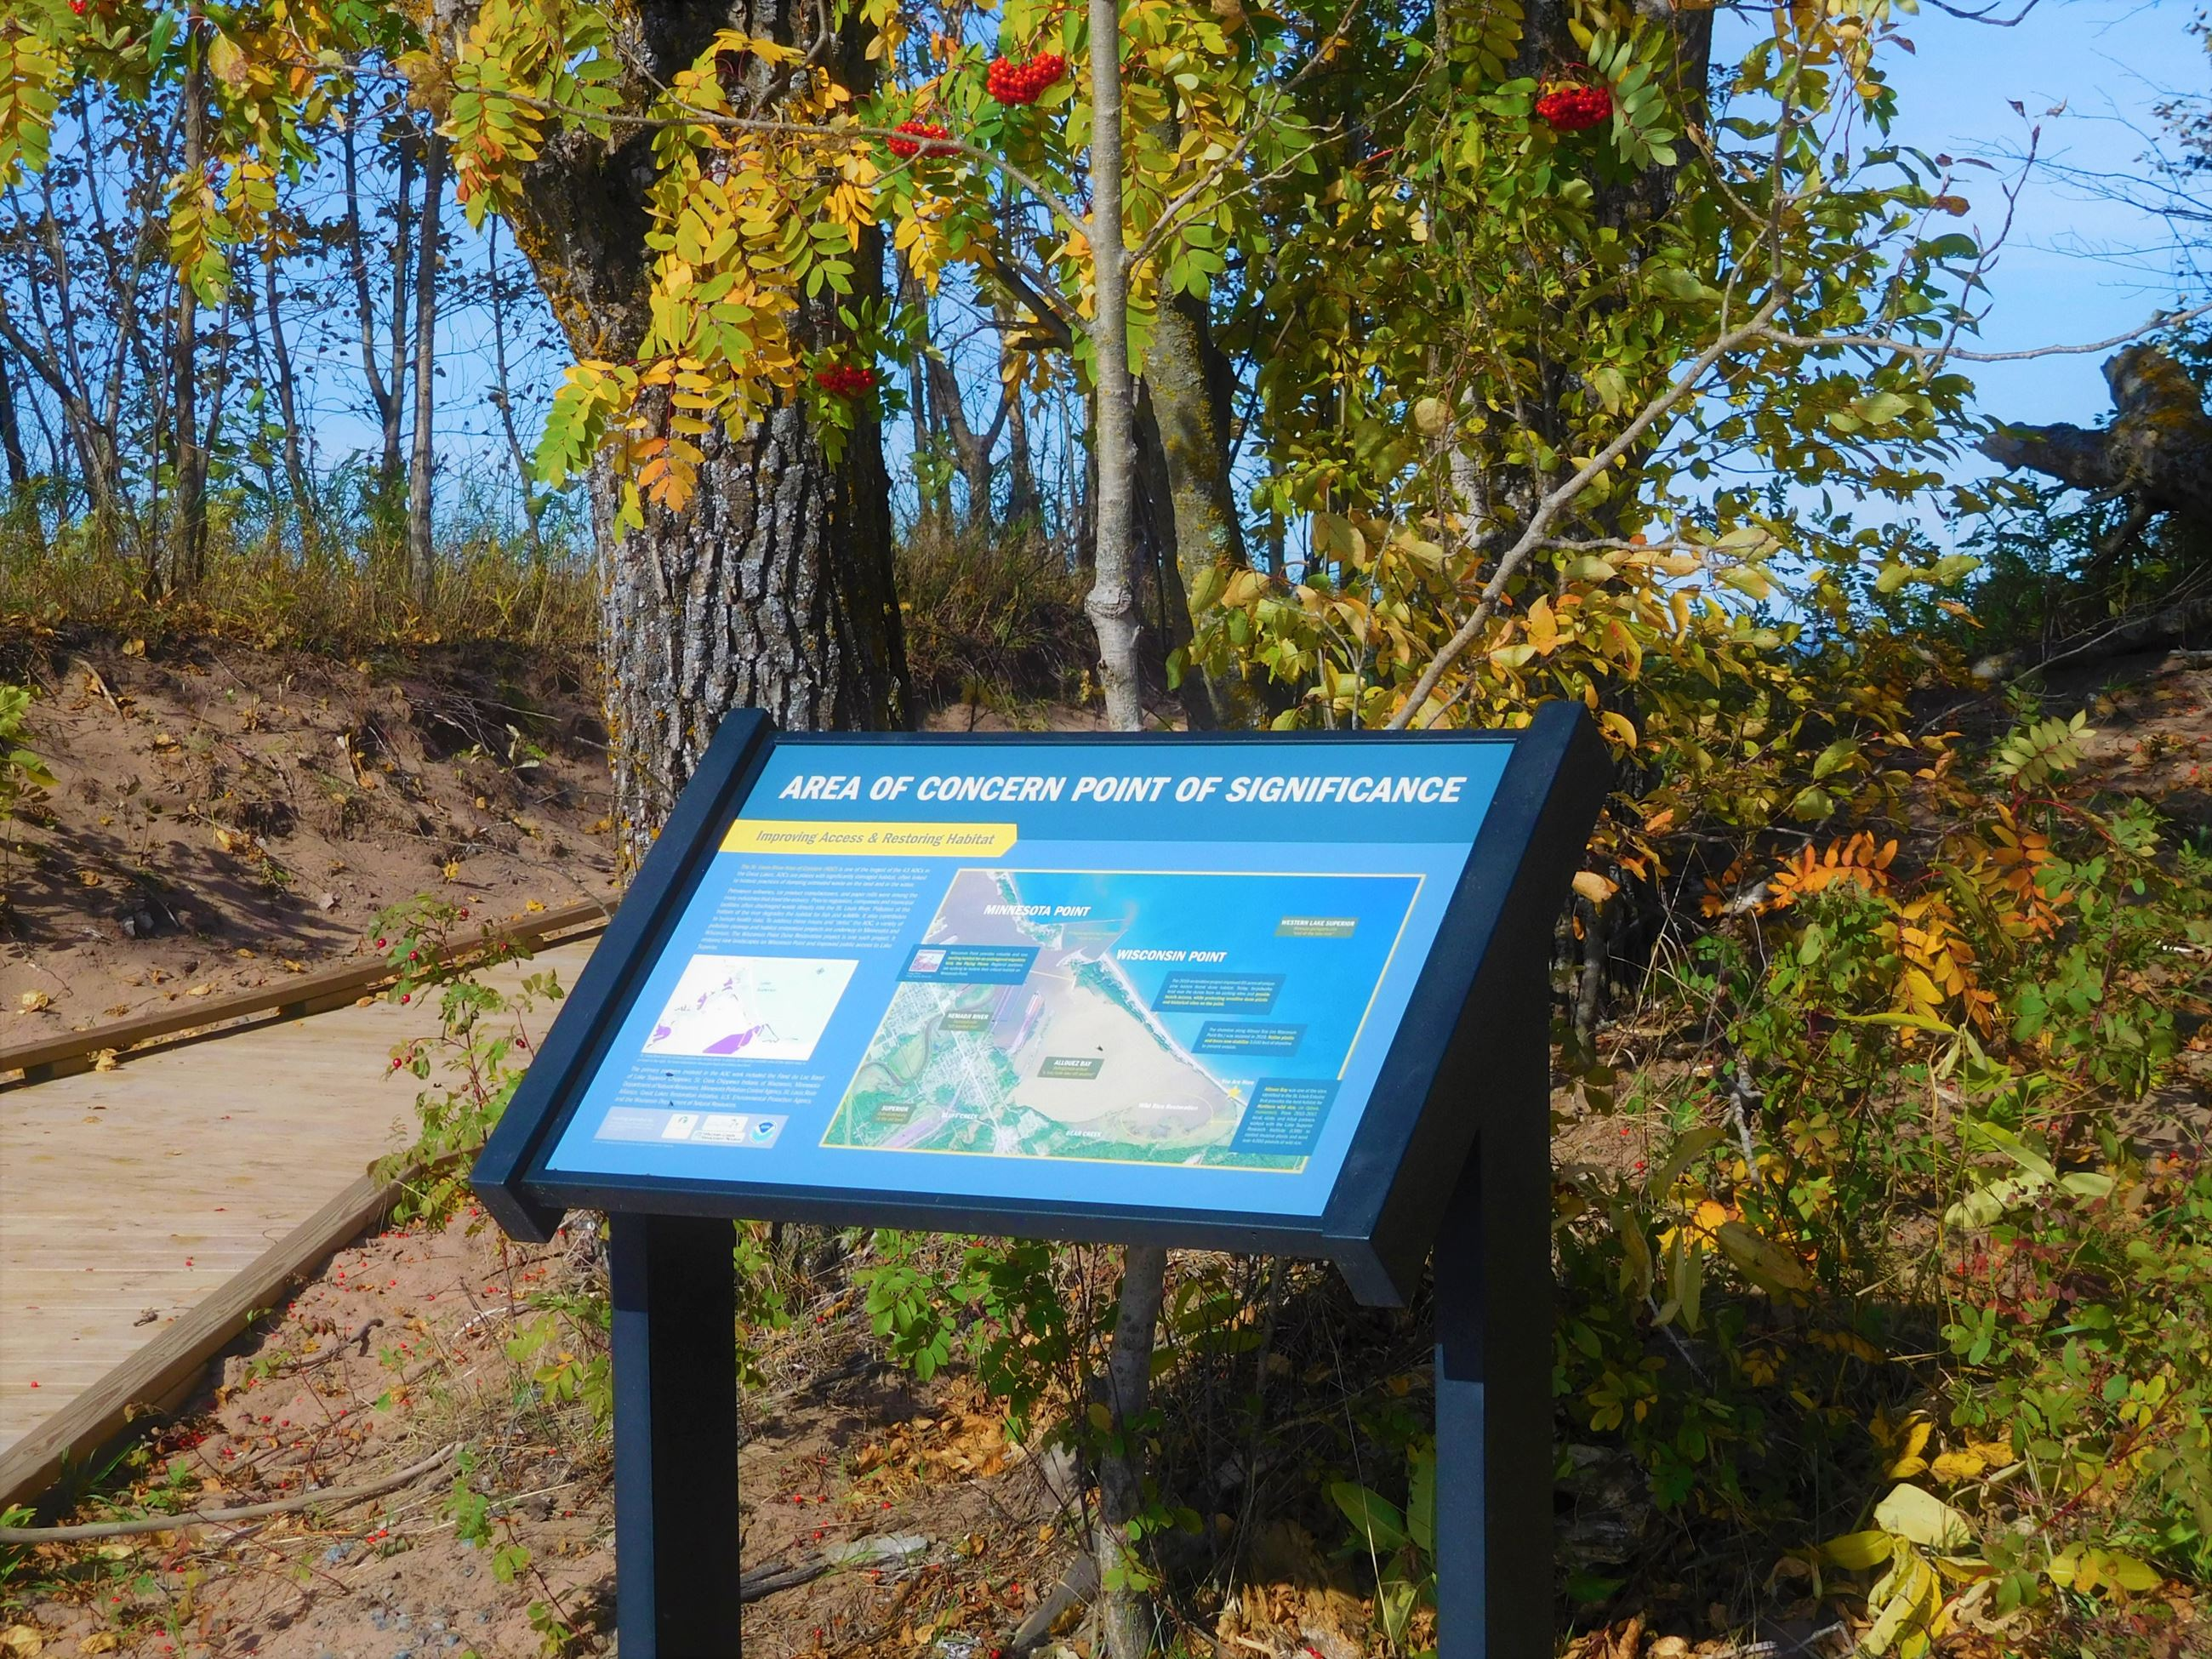 Area of Concern interpretive sign at lot one. Tree with red berries overhead.